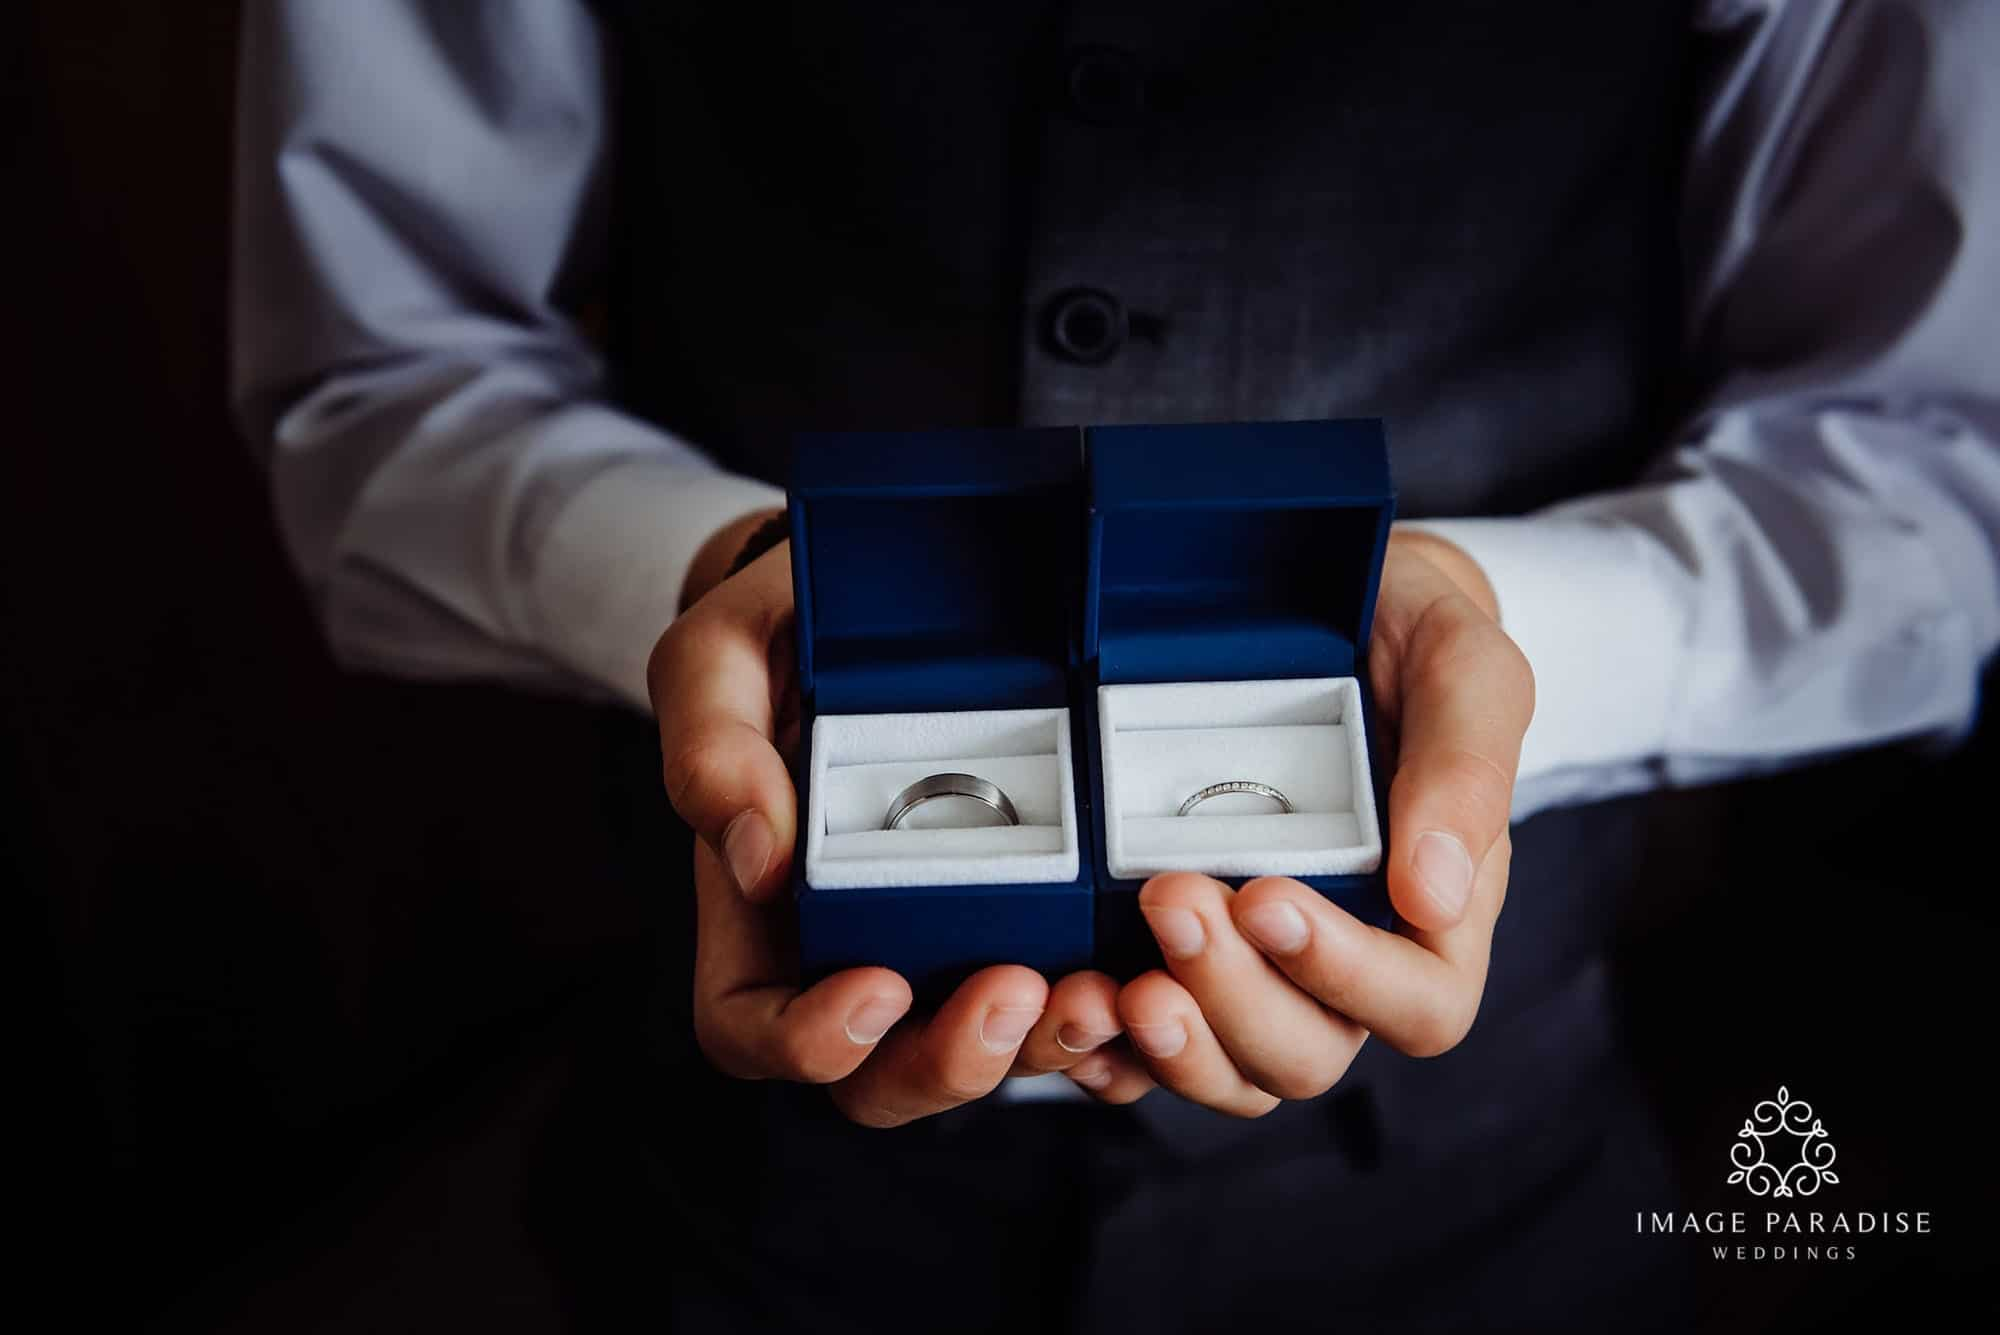 Paige boy holding the wedding rings at the Cotswolds hotel and spa wedding venue